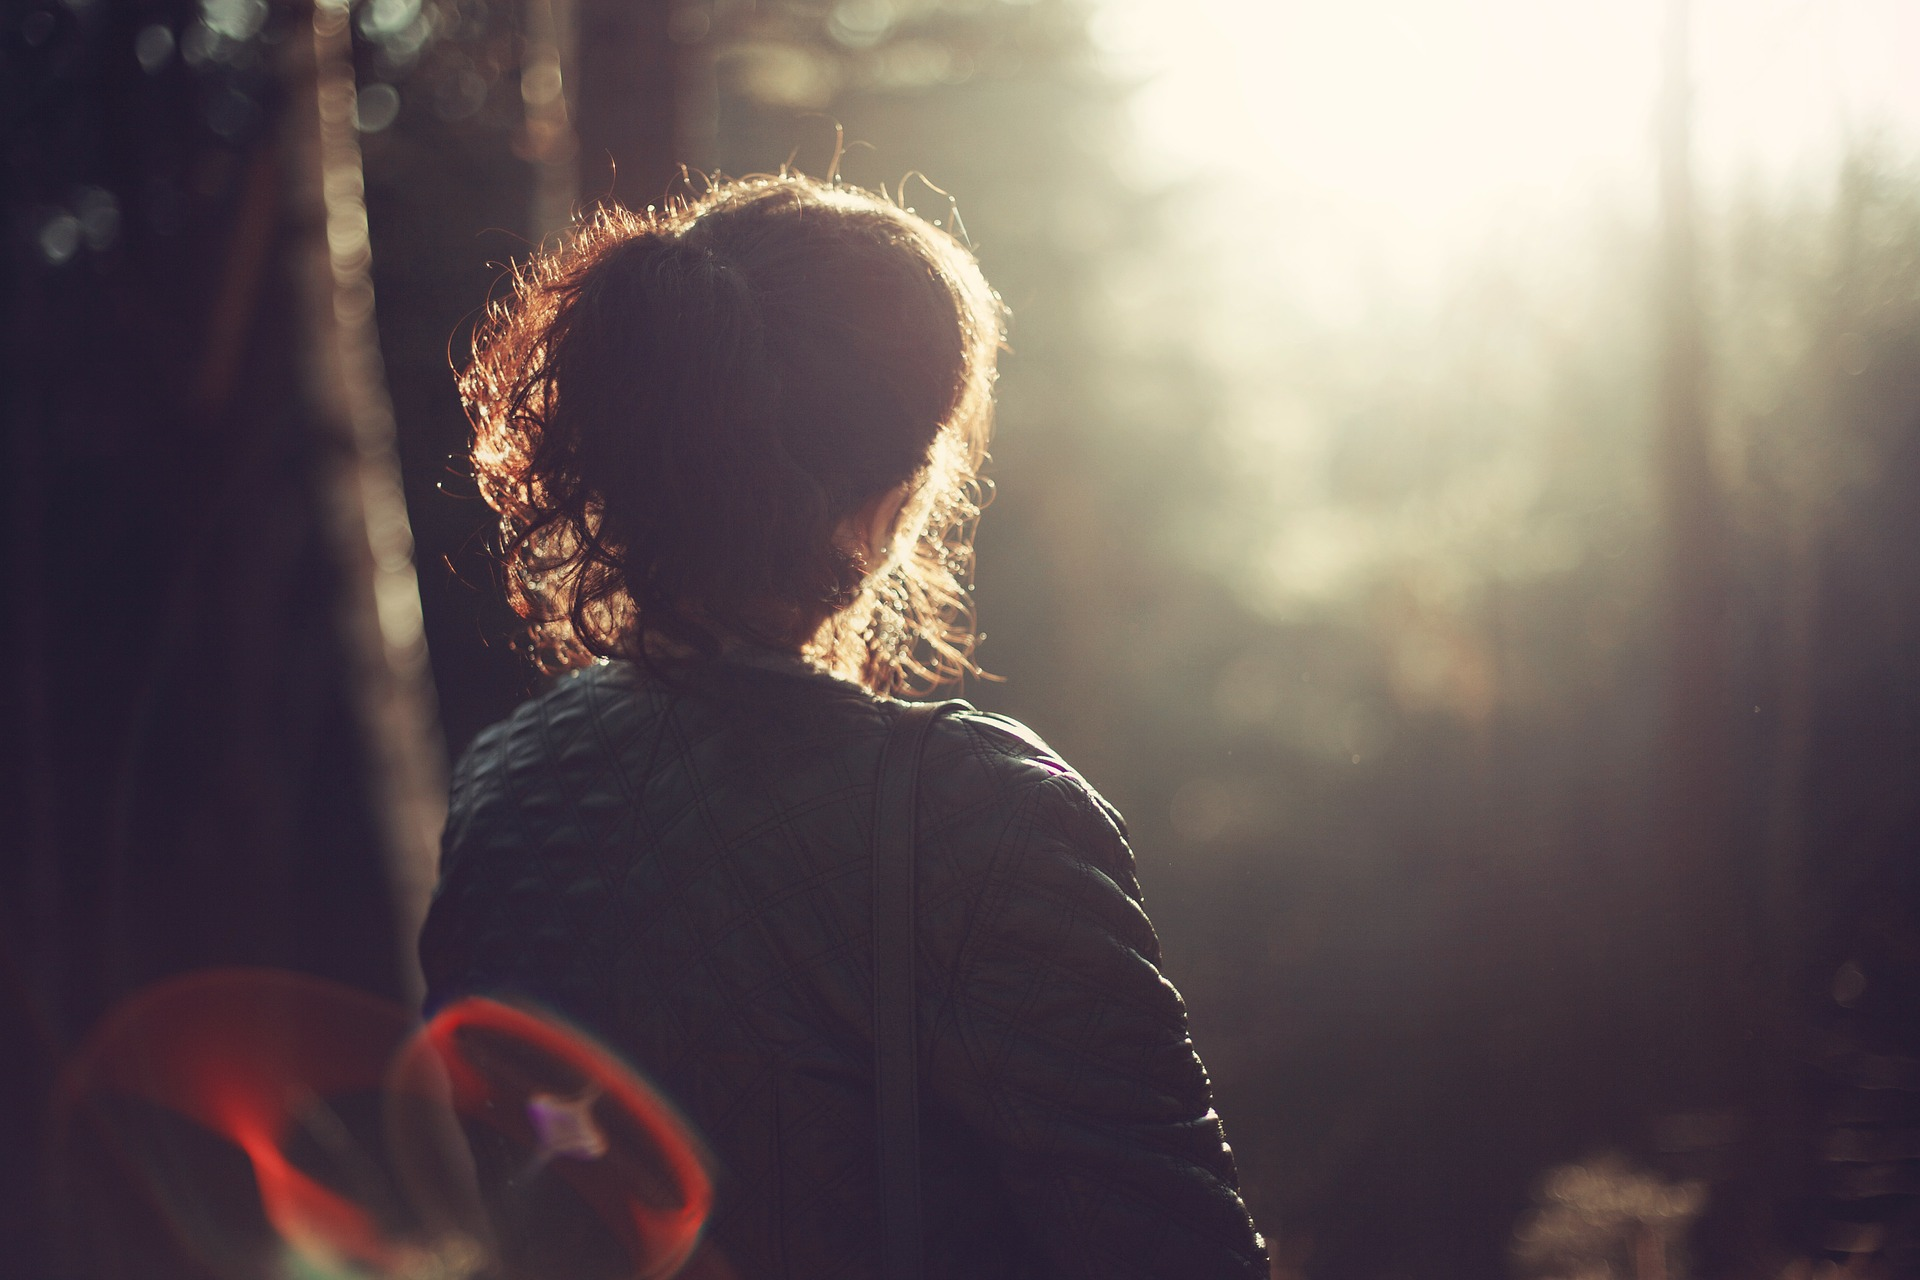 Experiencing Bliss Through Mindfulness